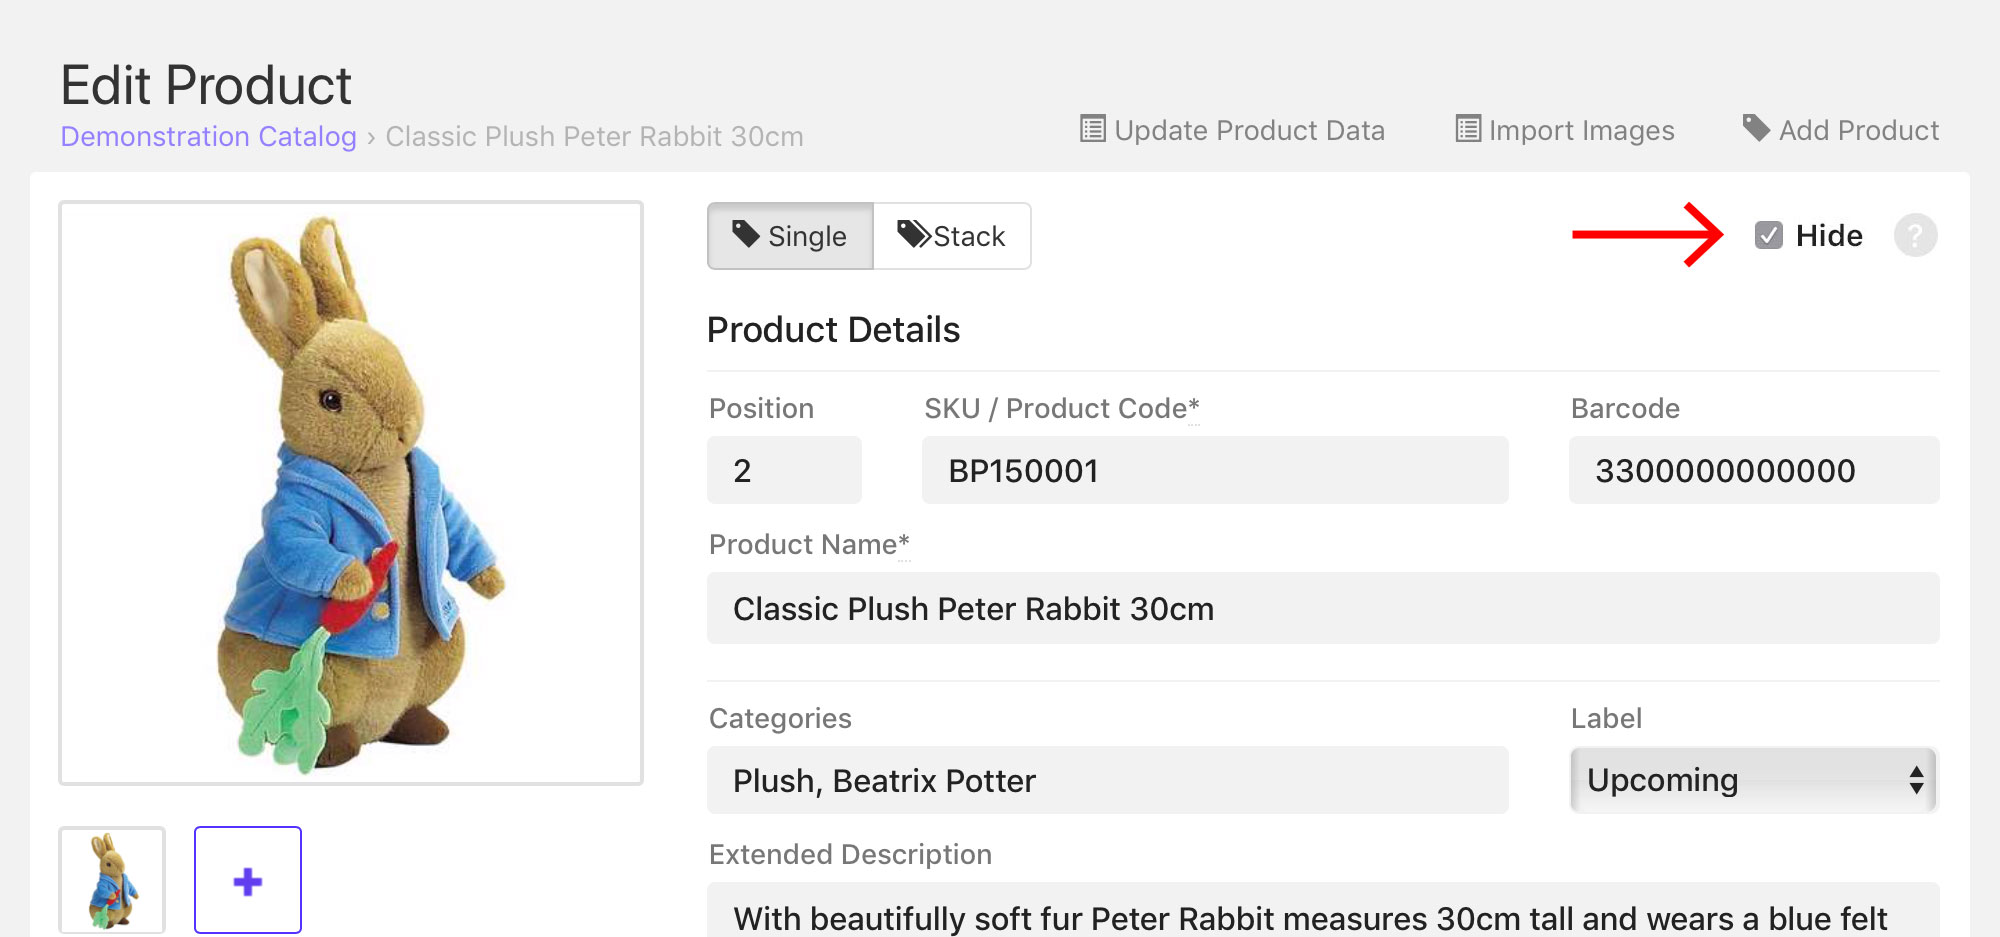 Hide checkbox on the Edit Product page